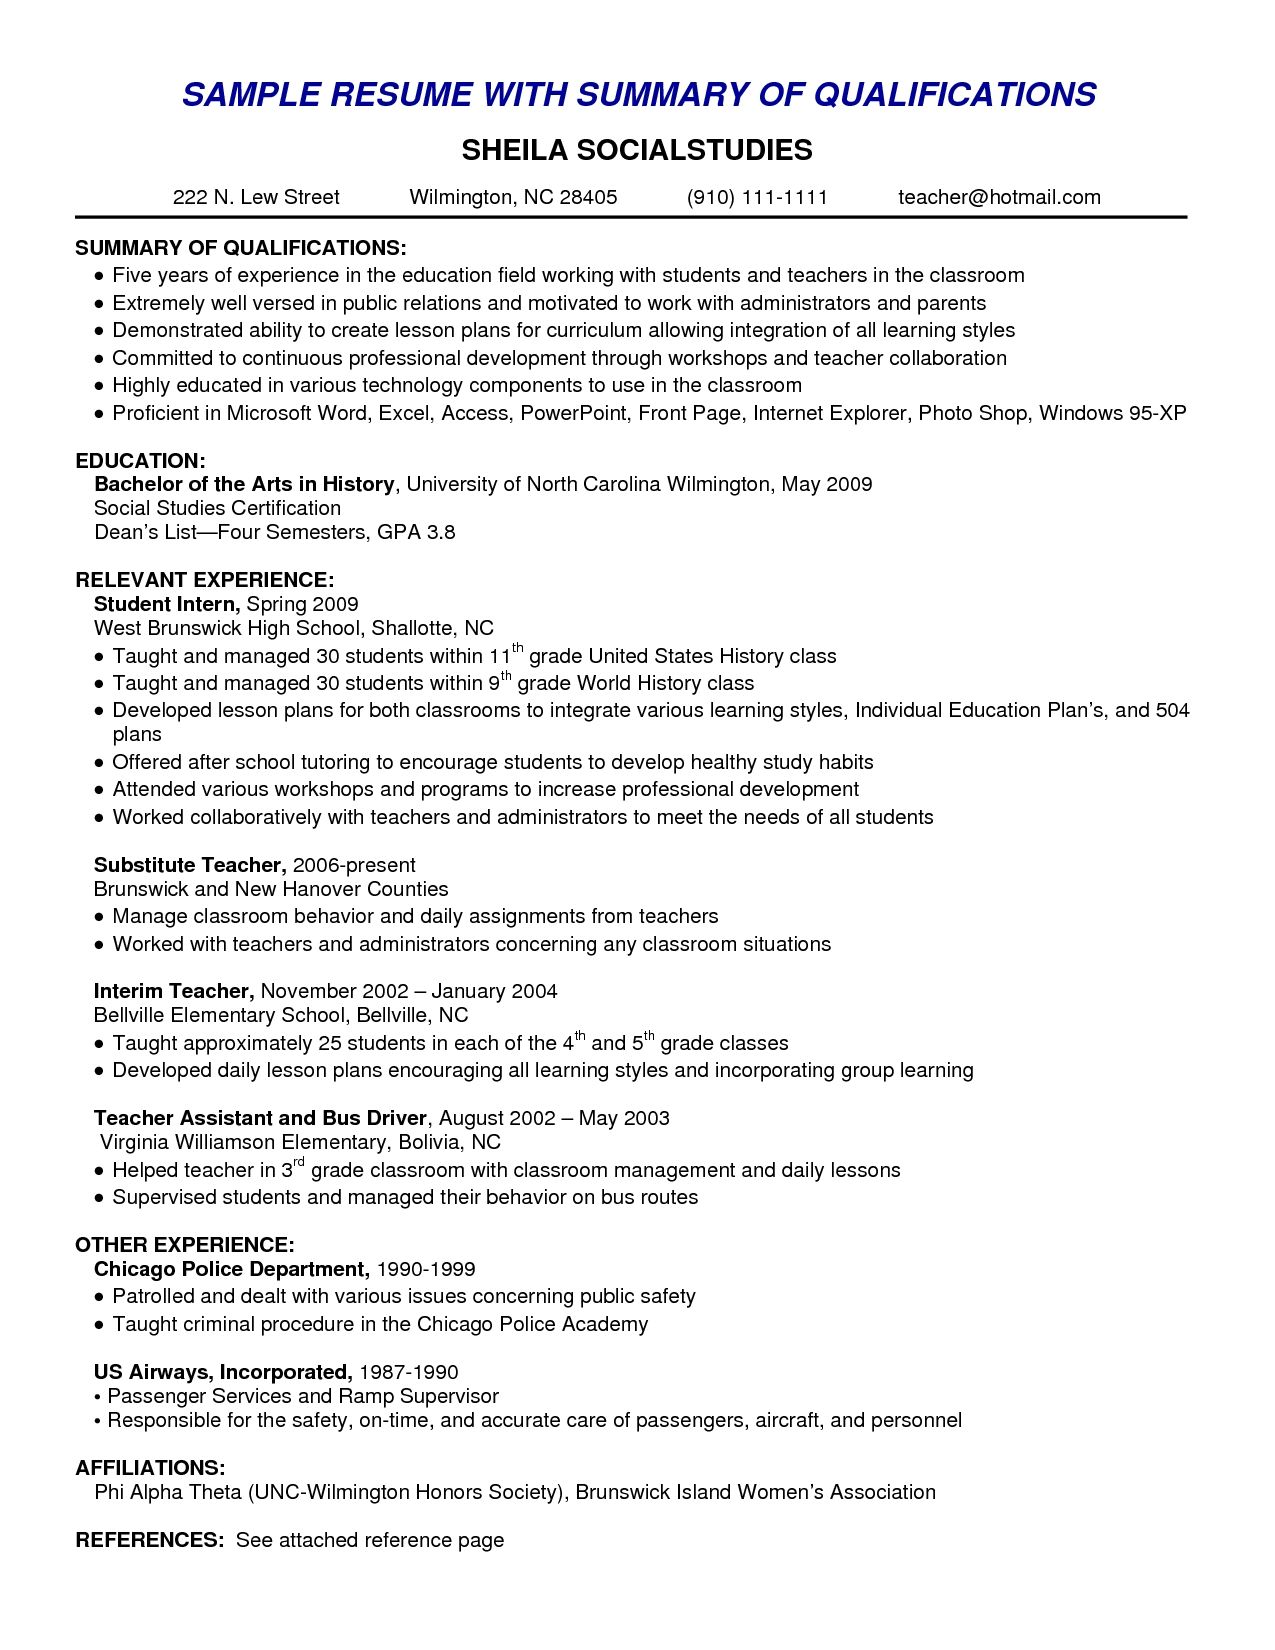 Example Of A Summary For A Resume Custom Resume Skills Summary Examples Example Of Skills Summary For Resume .